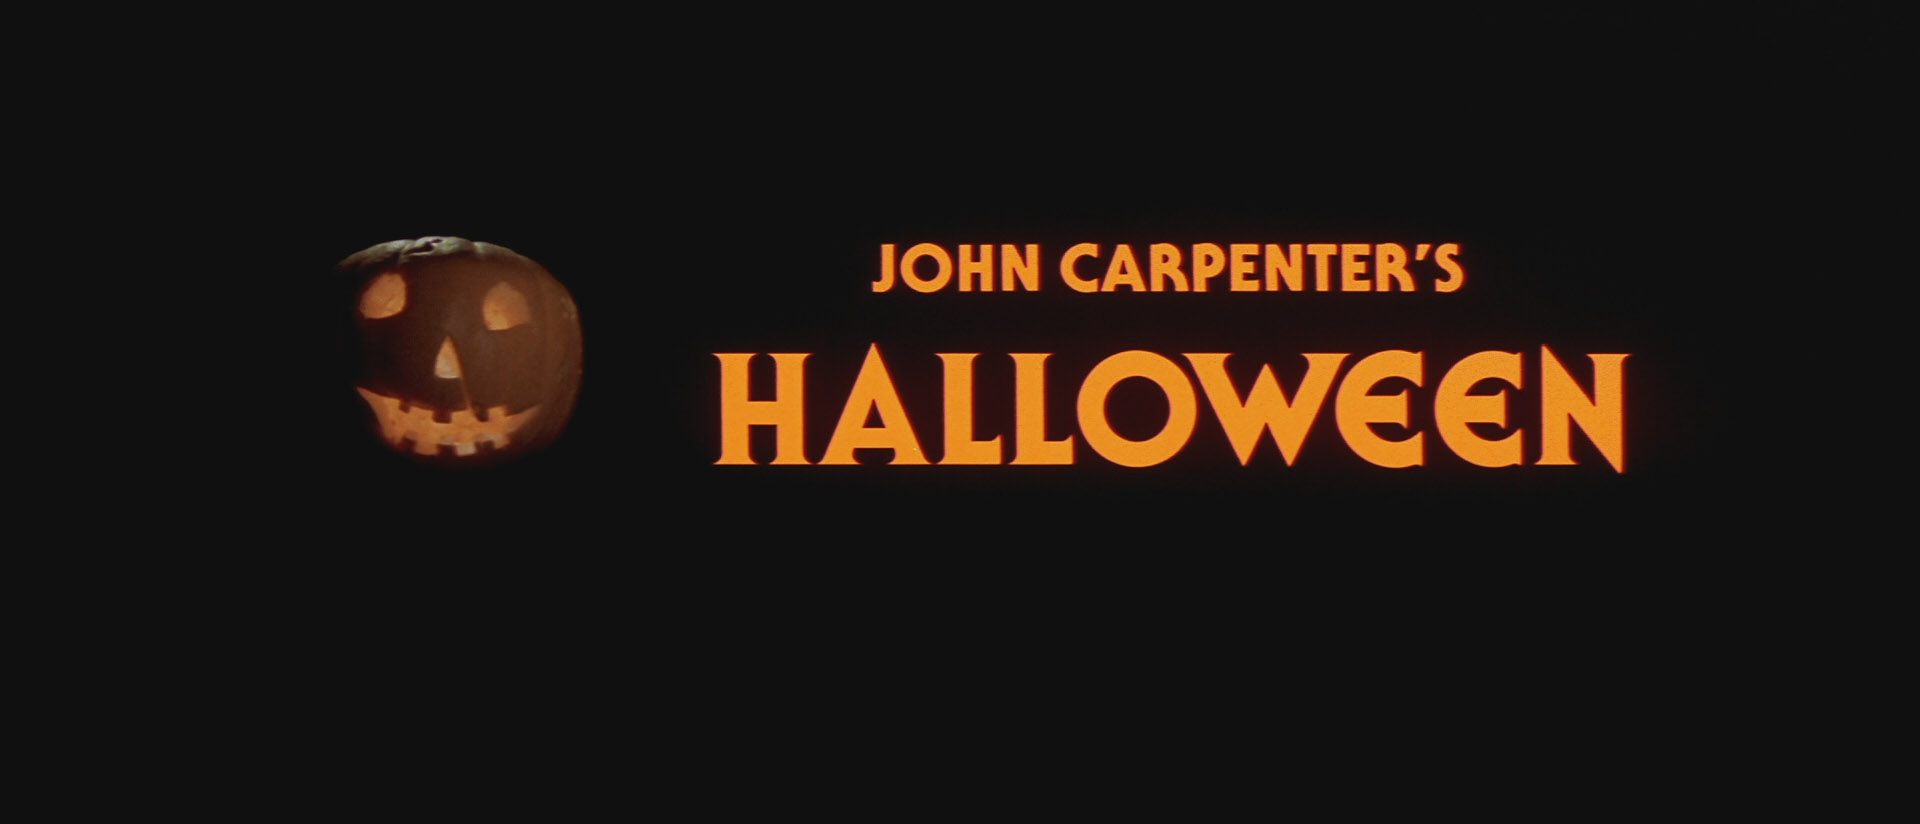 halloweenjpghalloween20movie201920x824.jpg